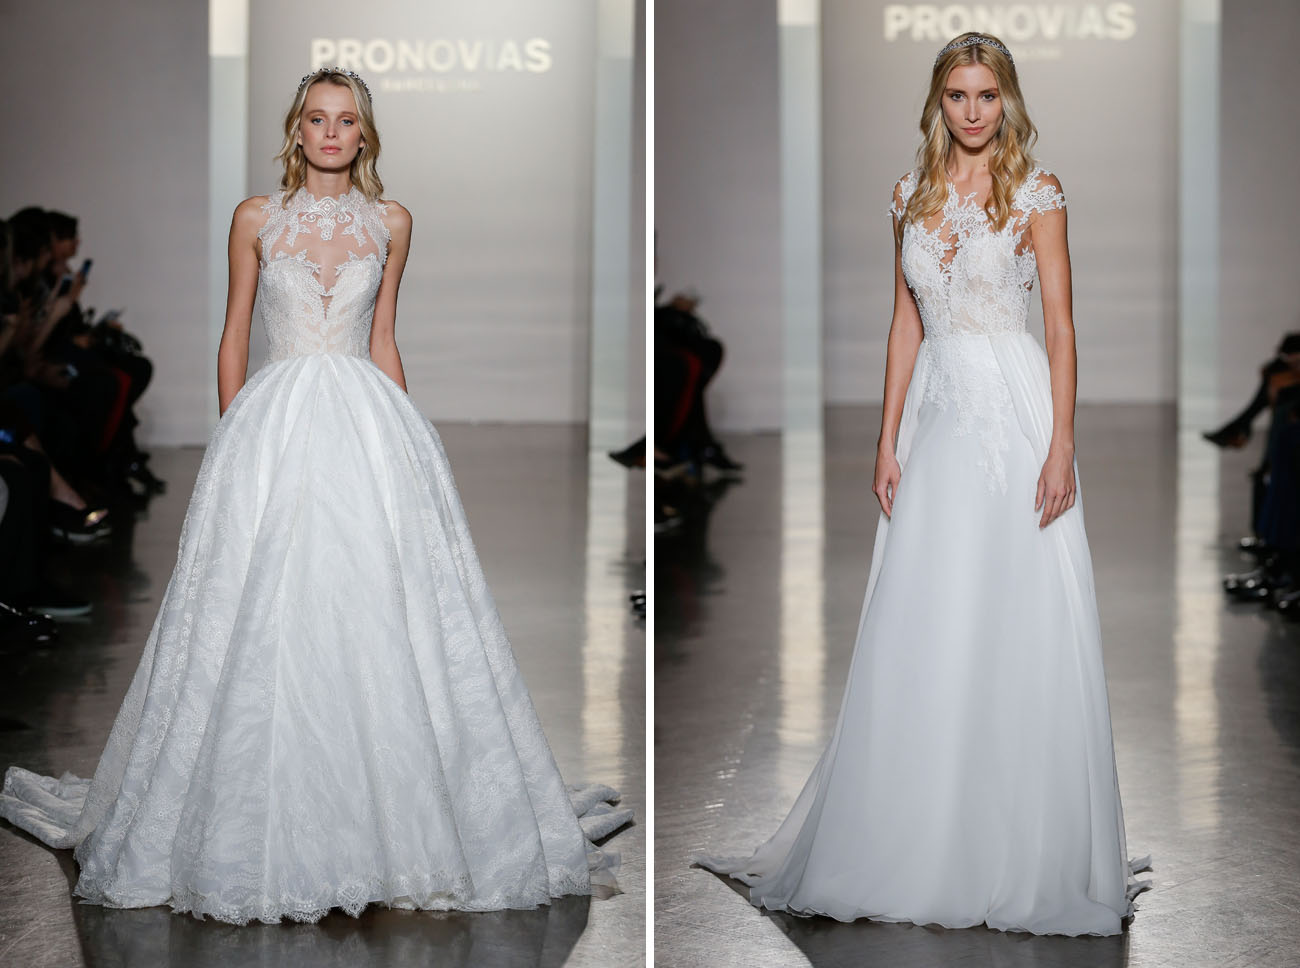 Pronovias Bridal Market NYC 2016